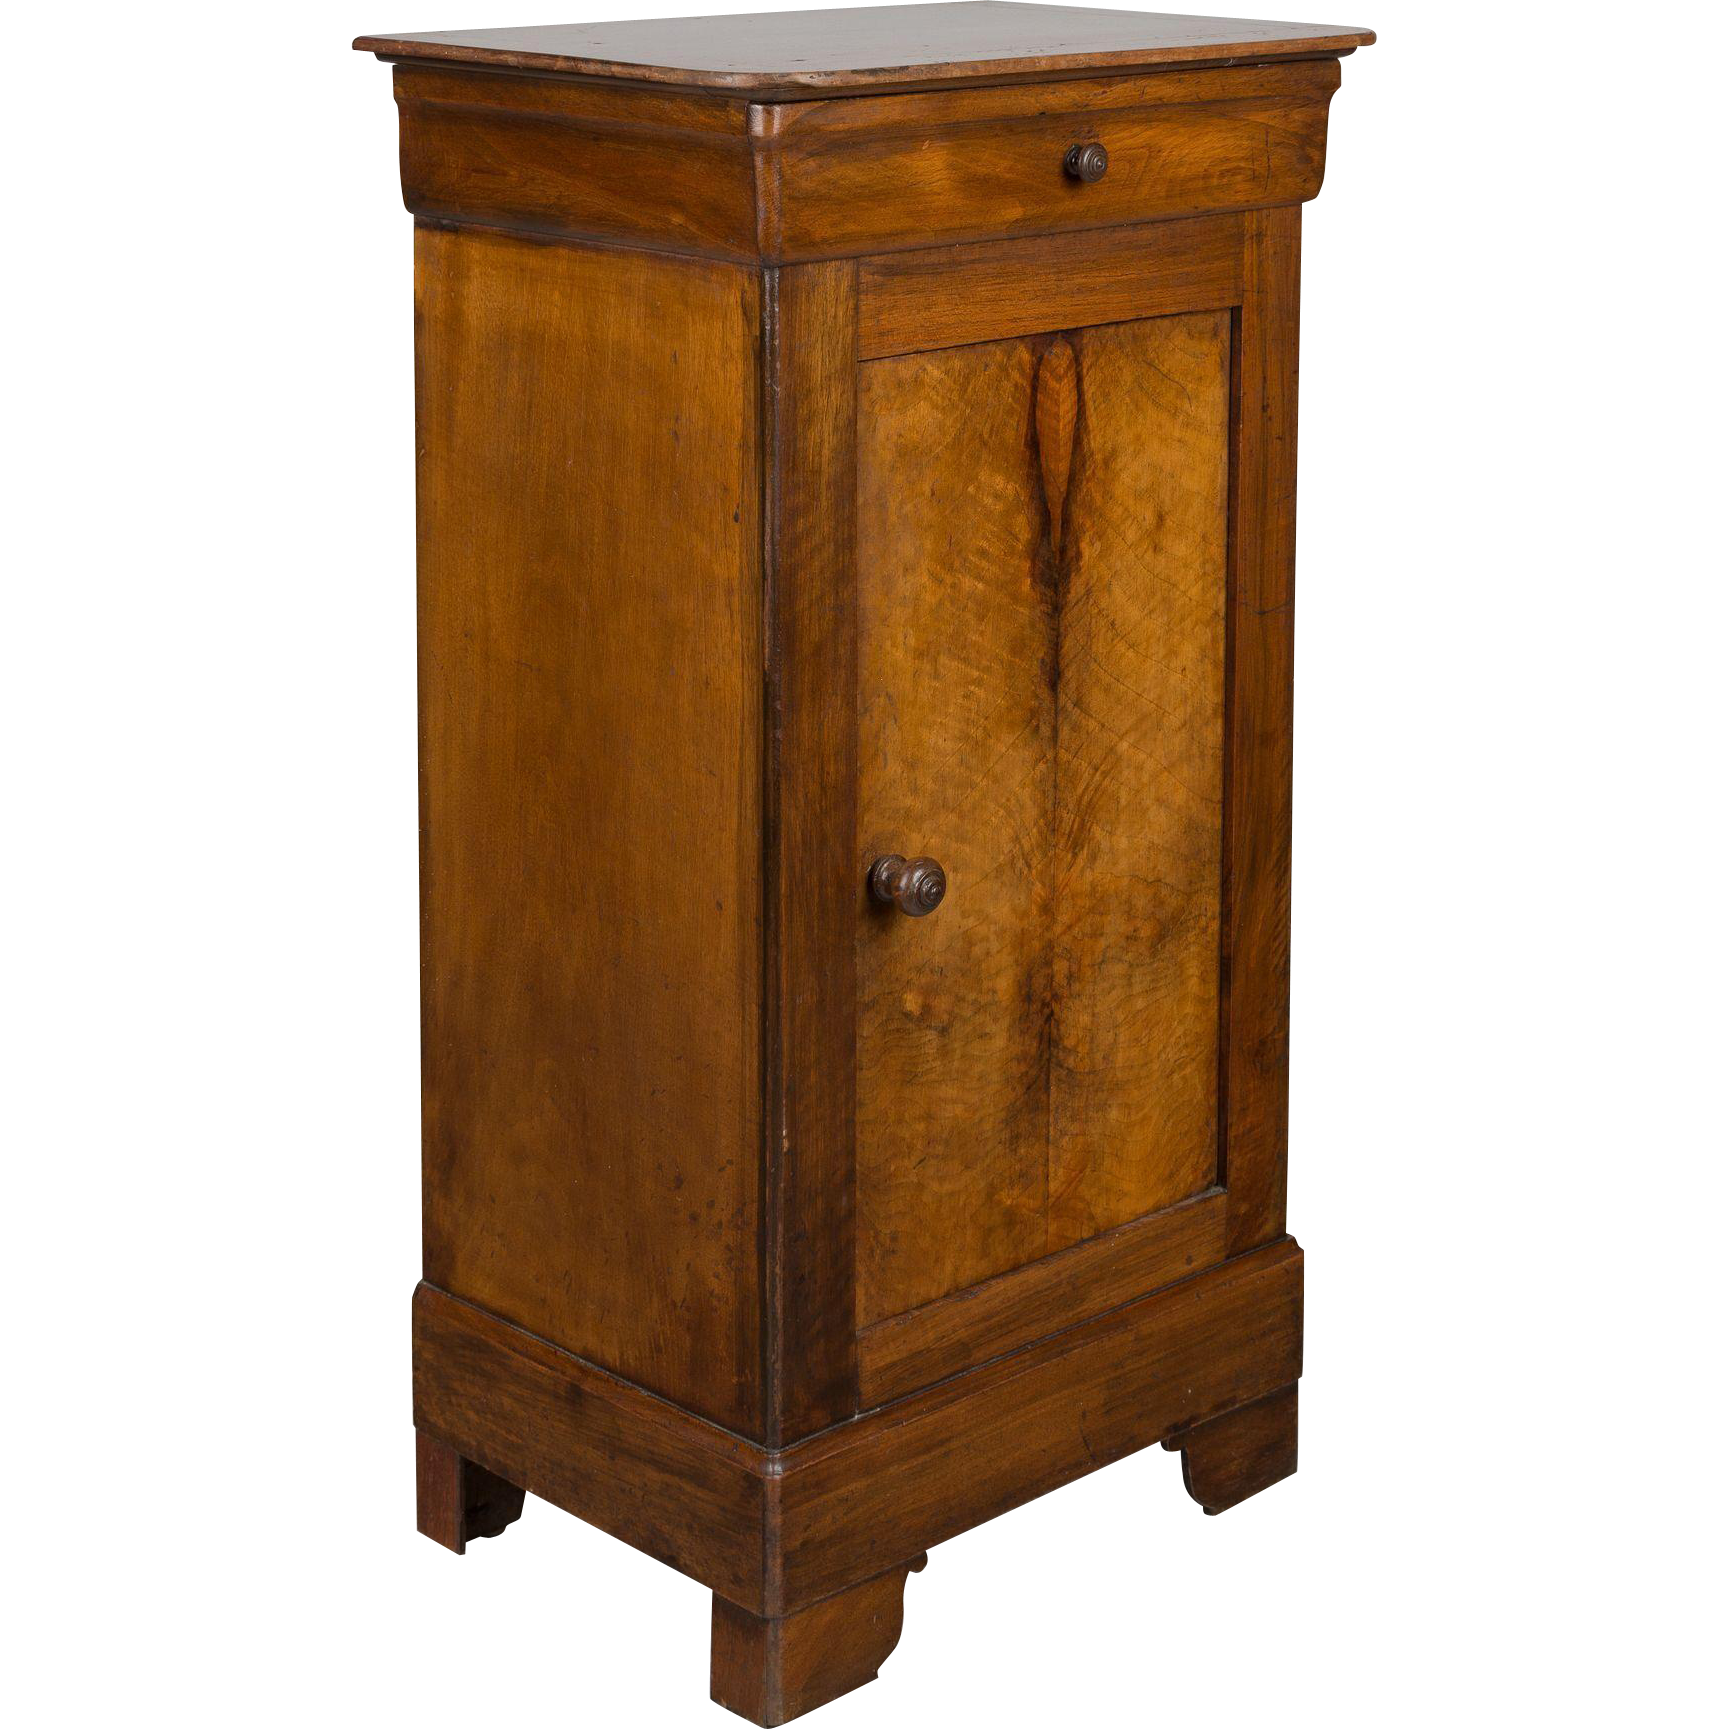 Louis philippe style side table from ofleury on ruby lane for Table louis philippe